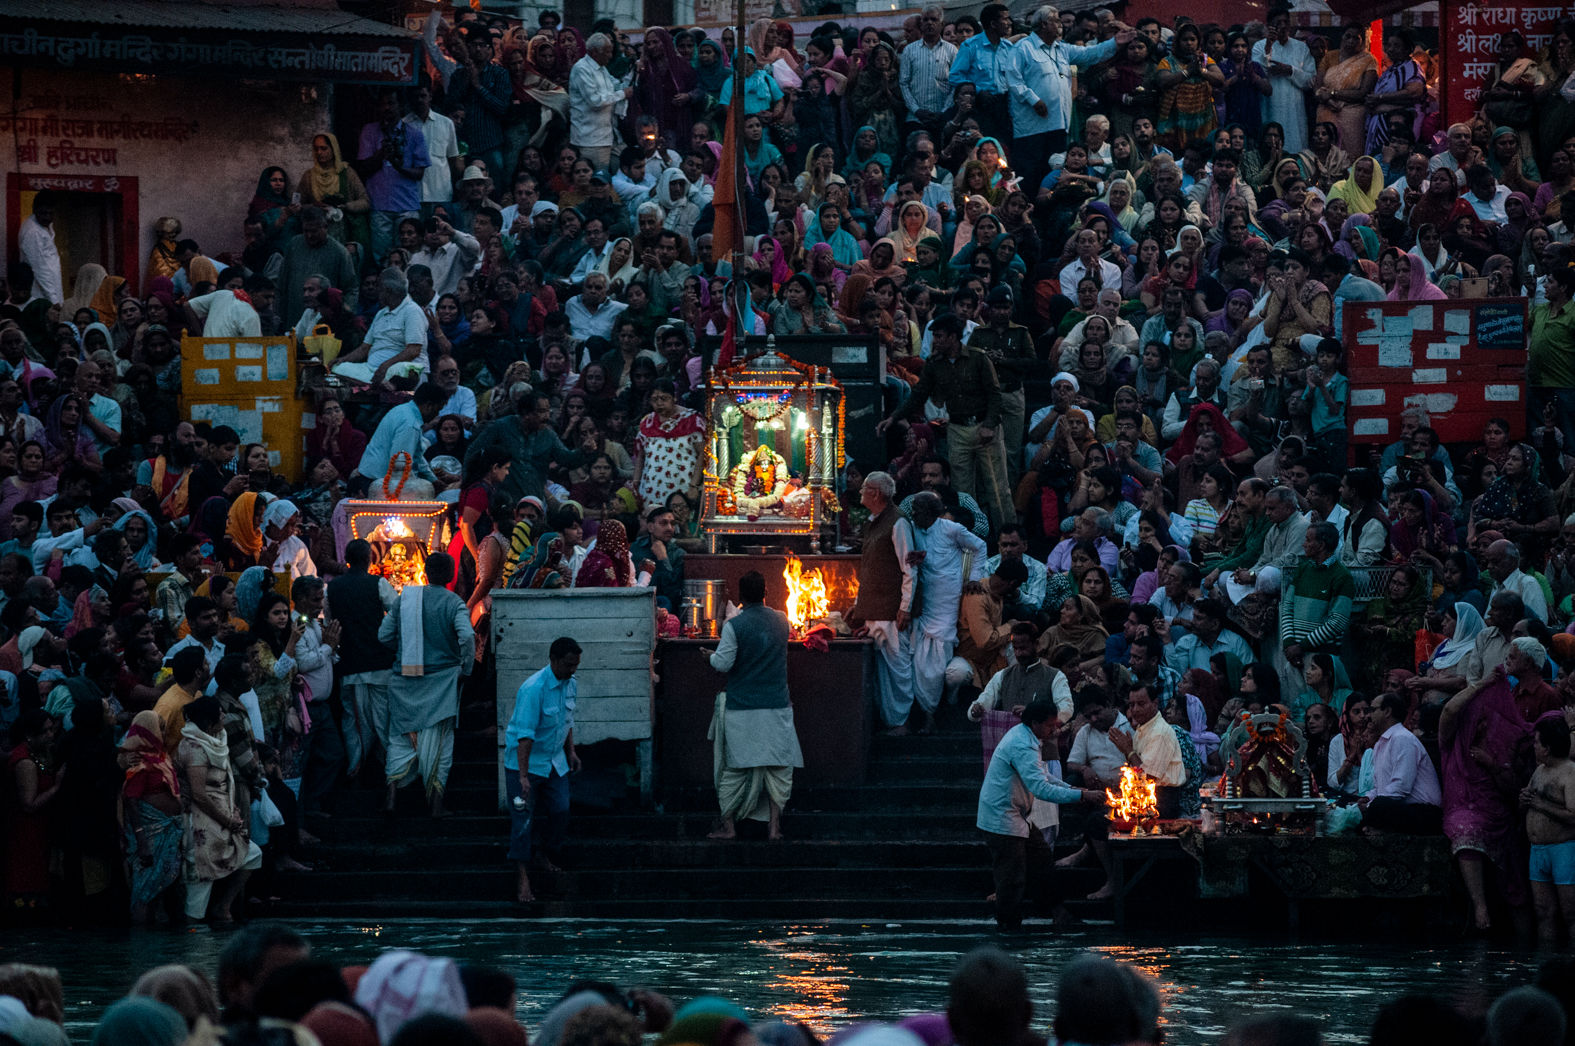 Evening prayers (Arti) by the Ganges at Haridwar, March 2013